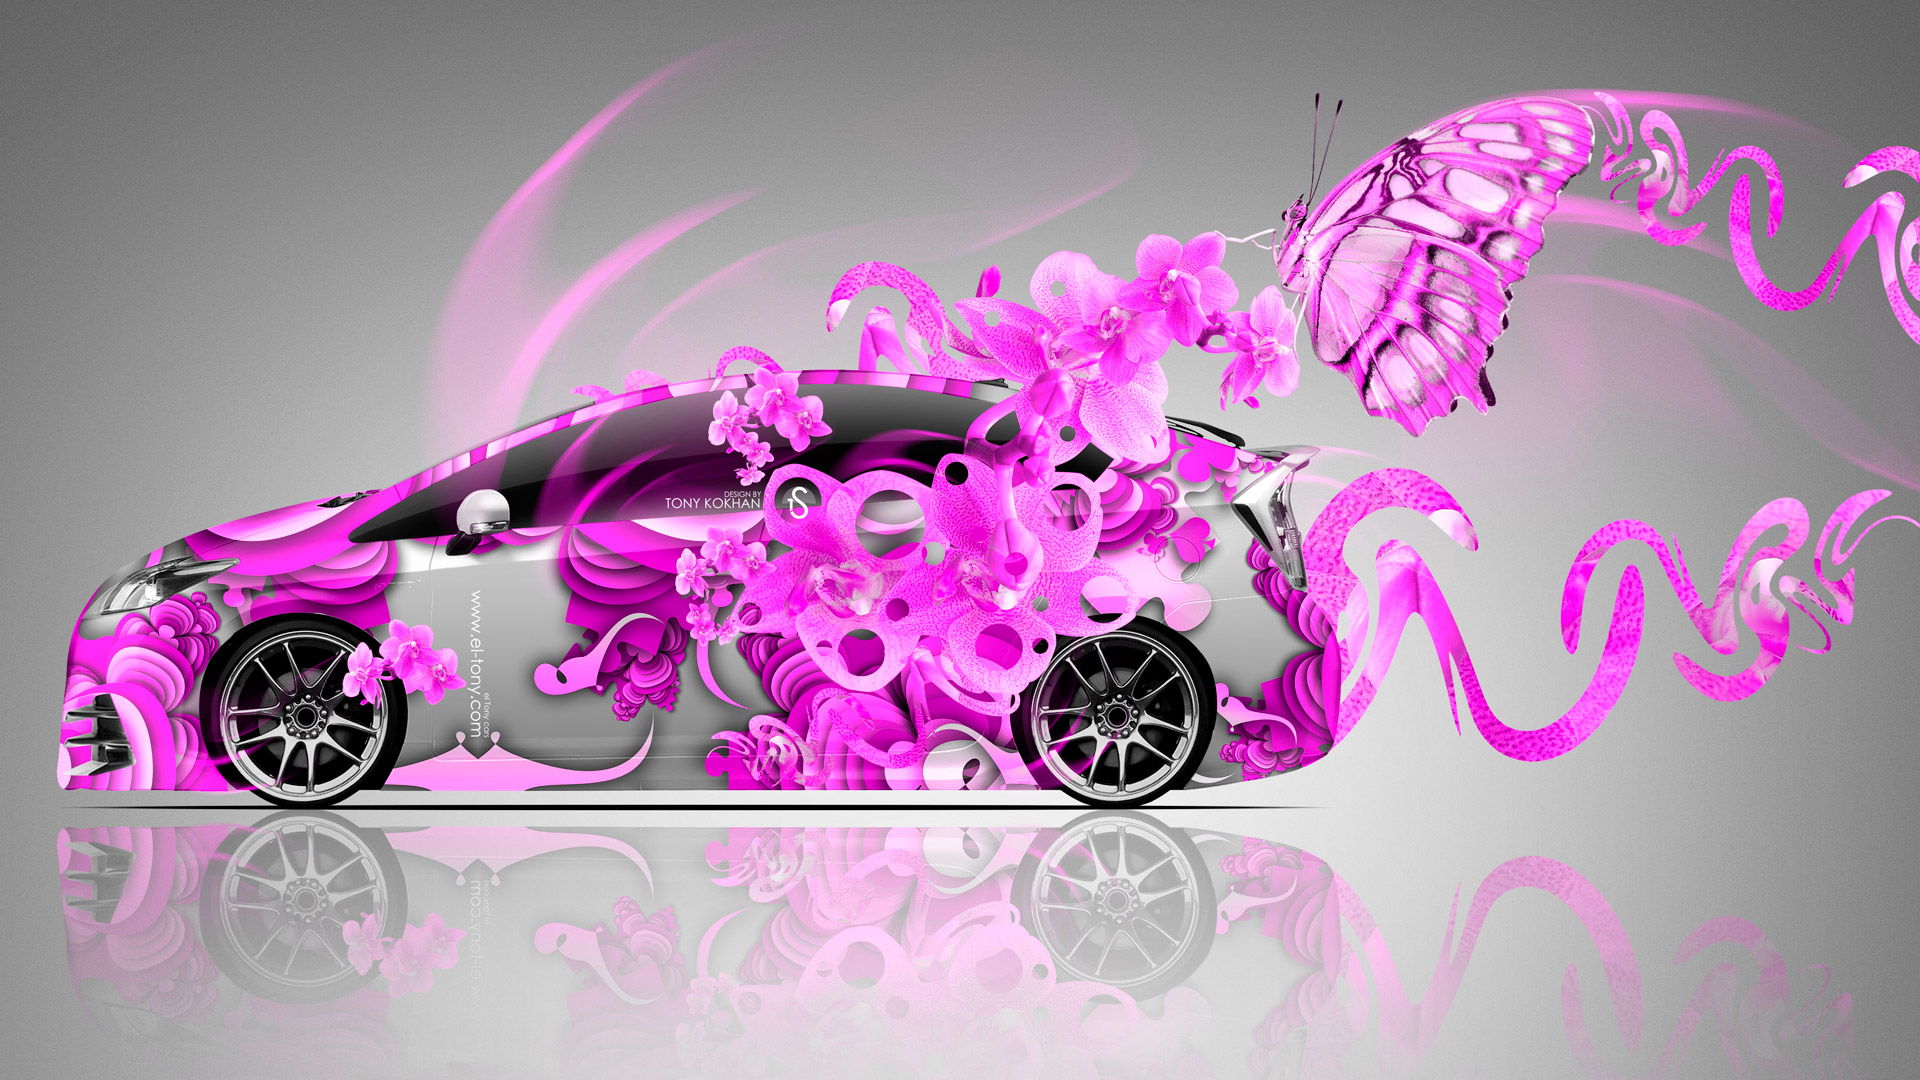 3d Bugatti Car Wallpaper Toyota Prius Fantasy Flowers Butterfly Car 2014 El Tony